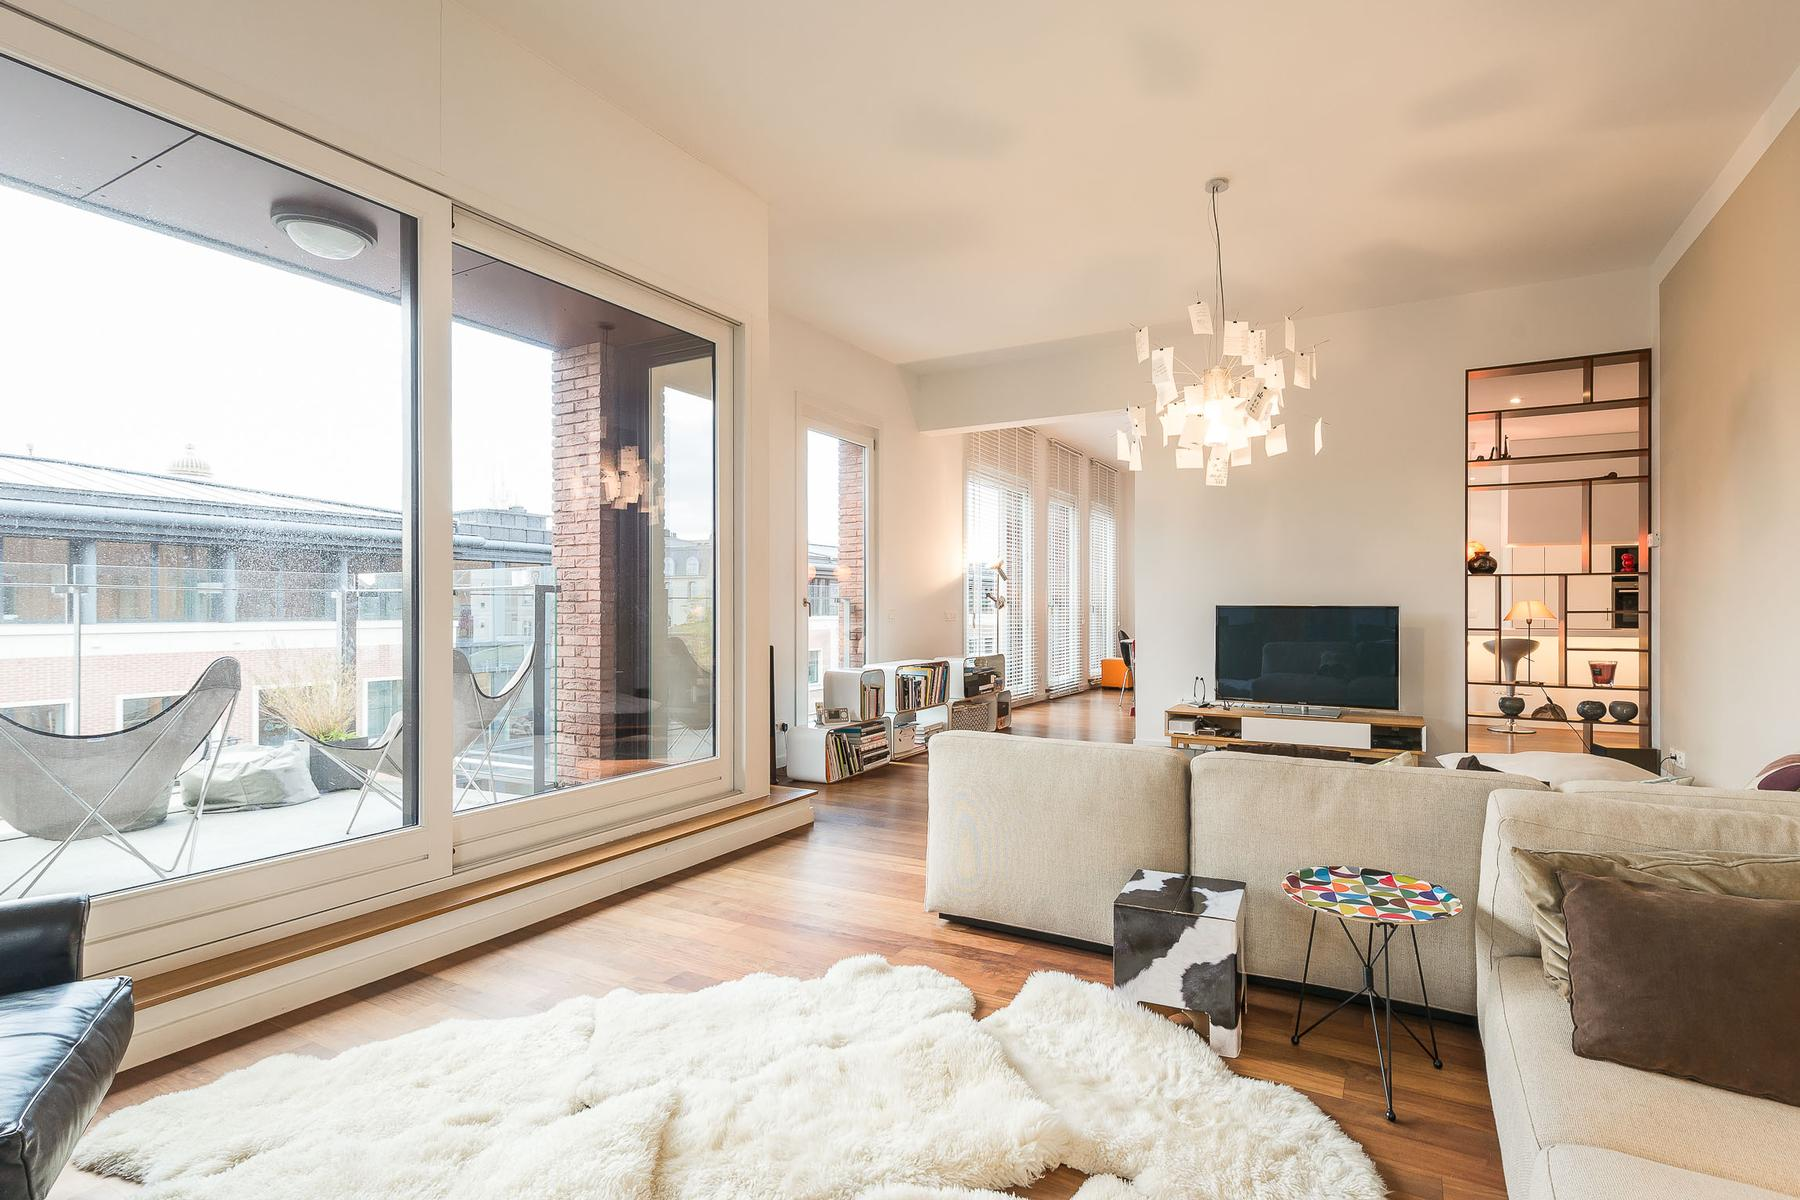 Apartment for Sale at Bruxelles I Sablon Brussels, Brussels, 1000 Belgium